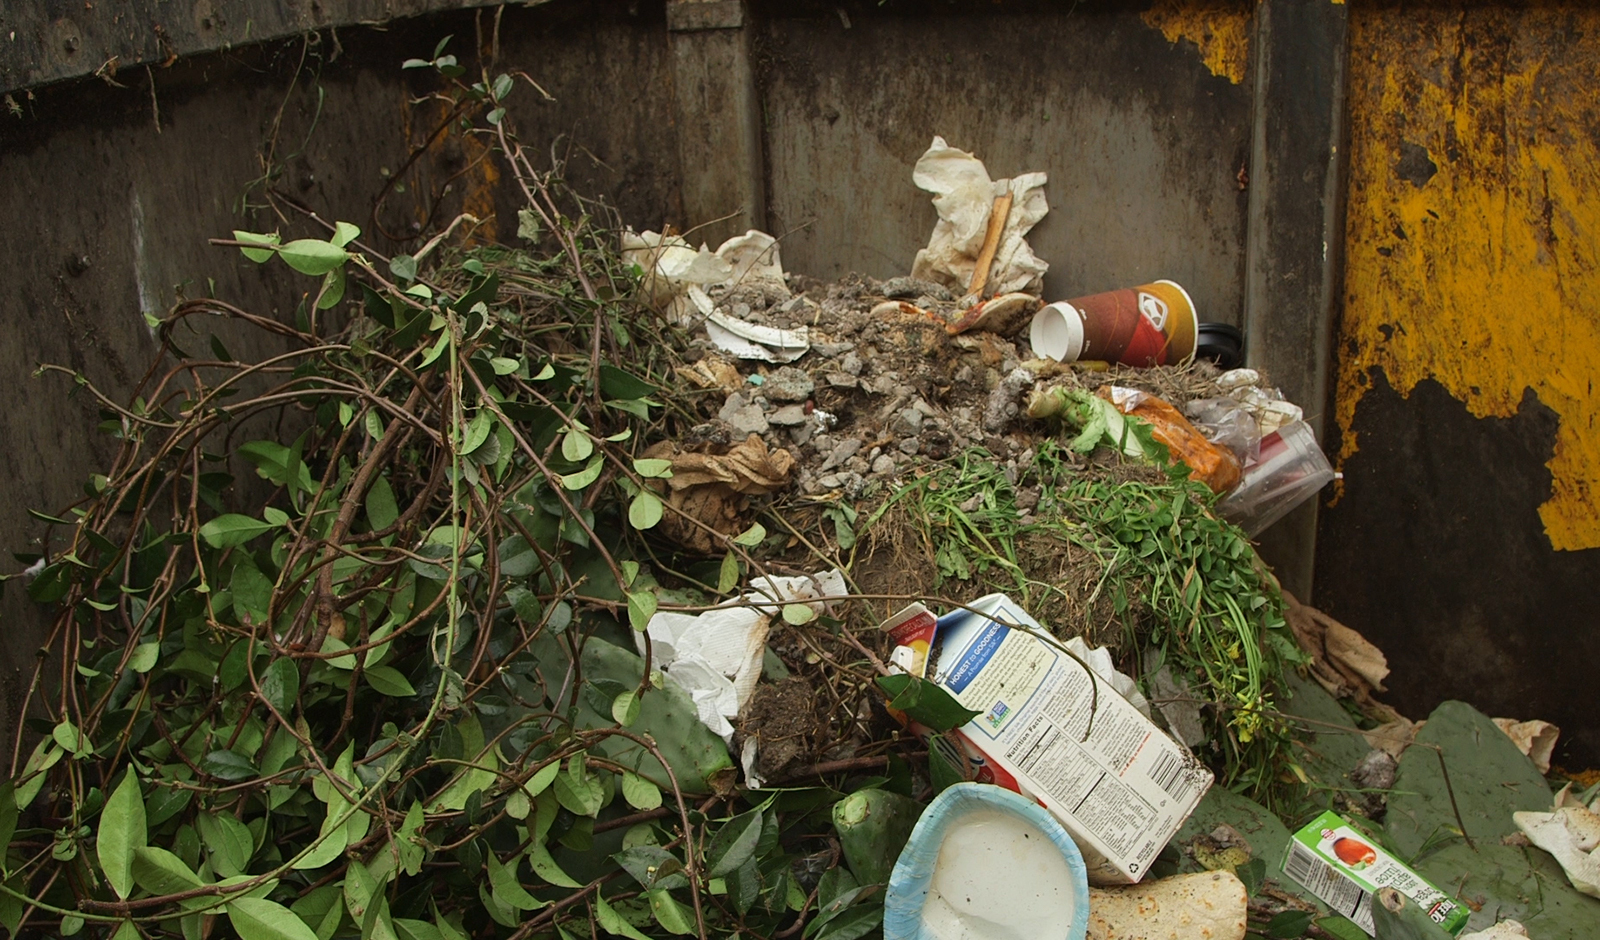 Green waste includes branches, paper, food scraps and every other product that has been alive in your lifetime.